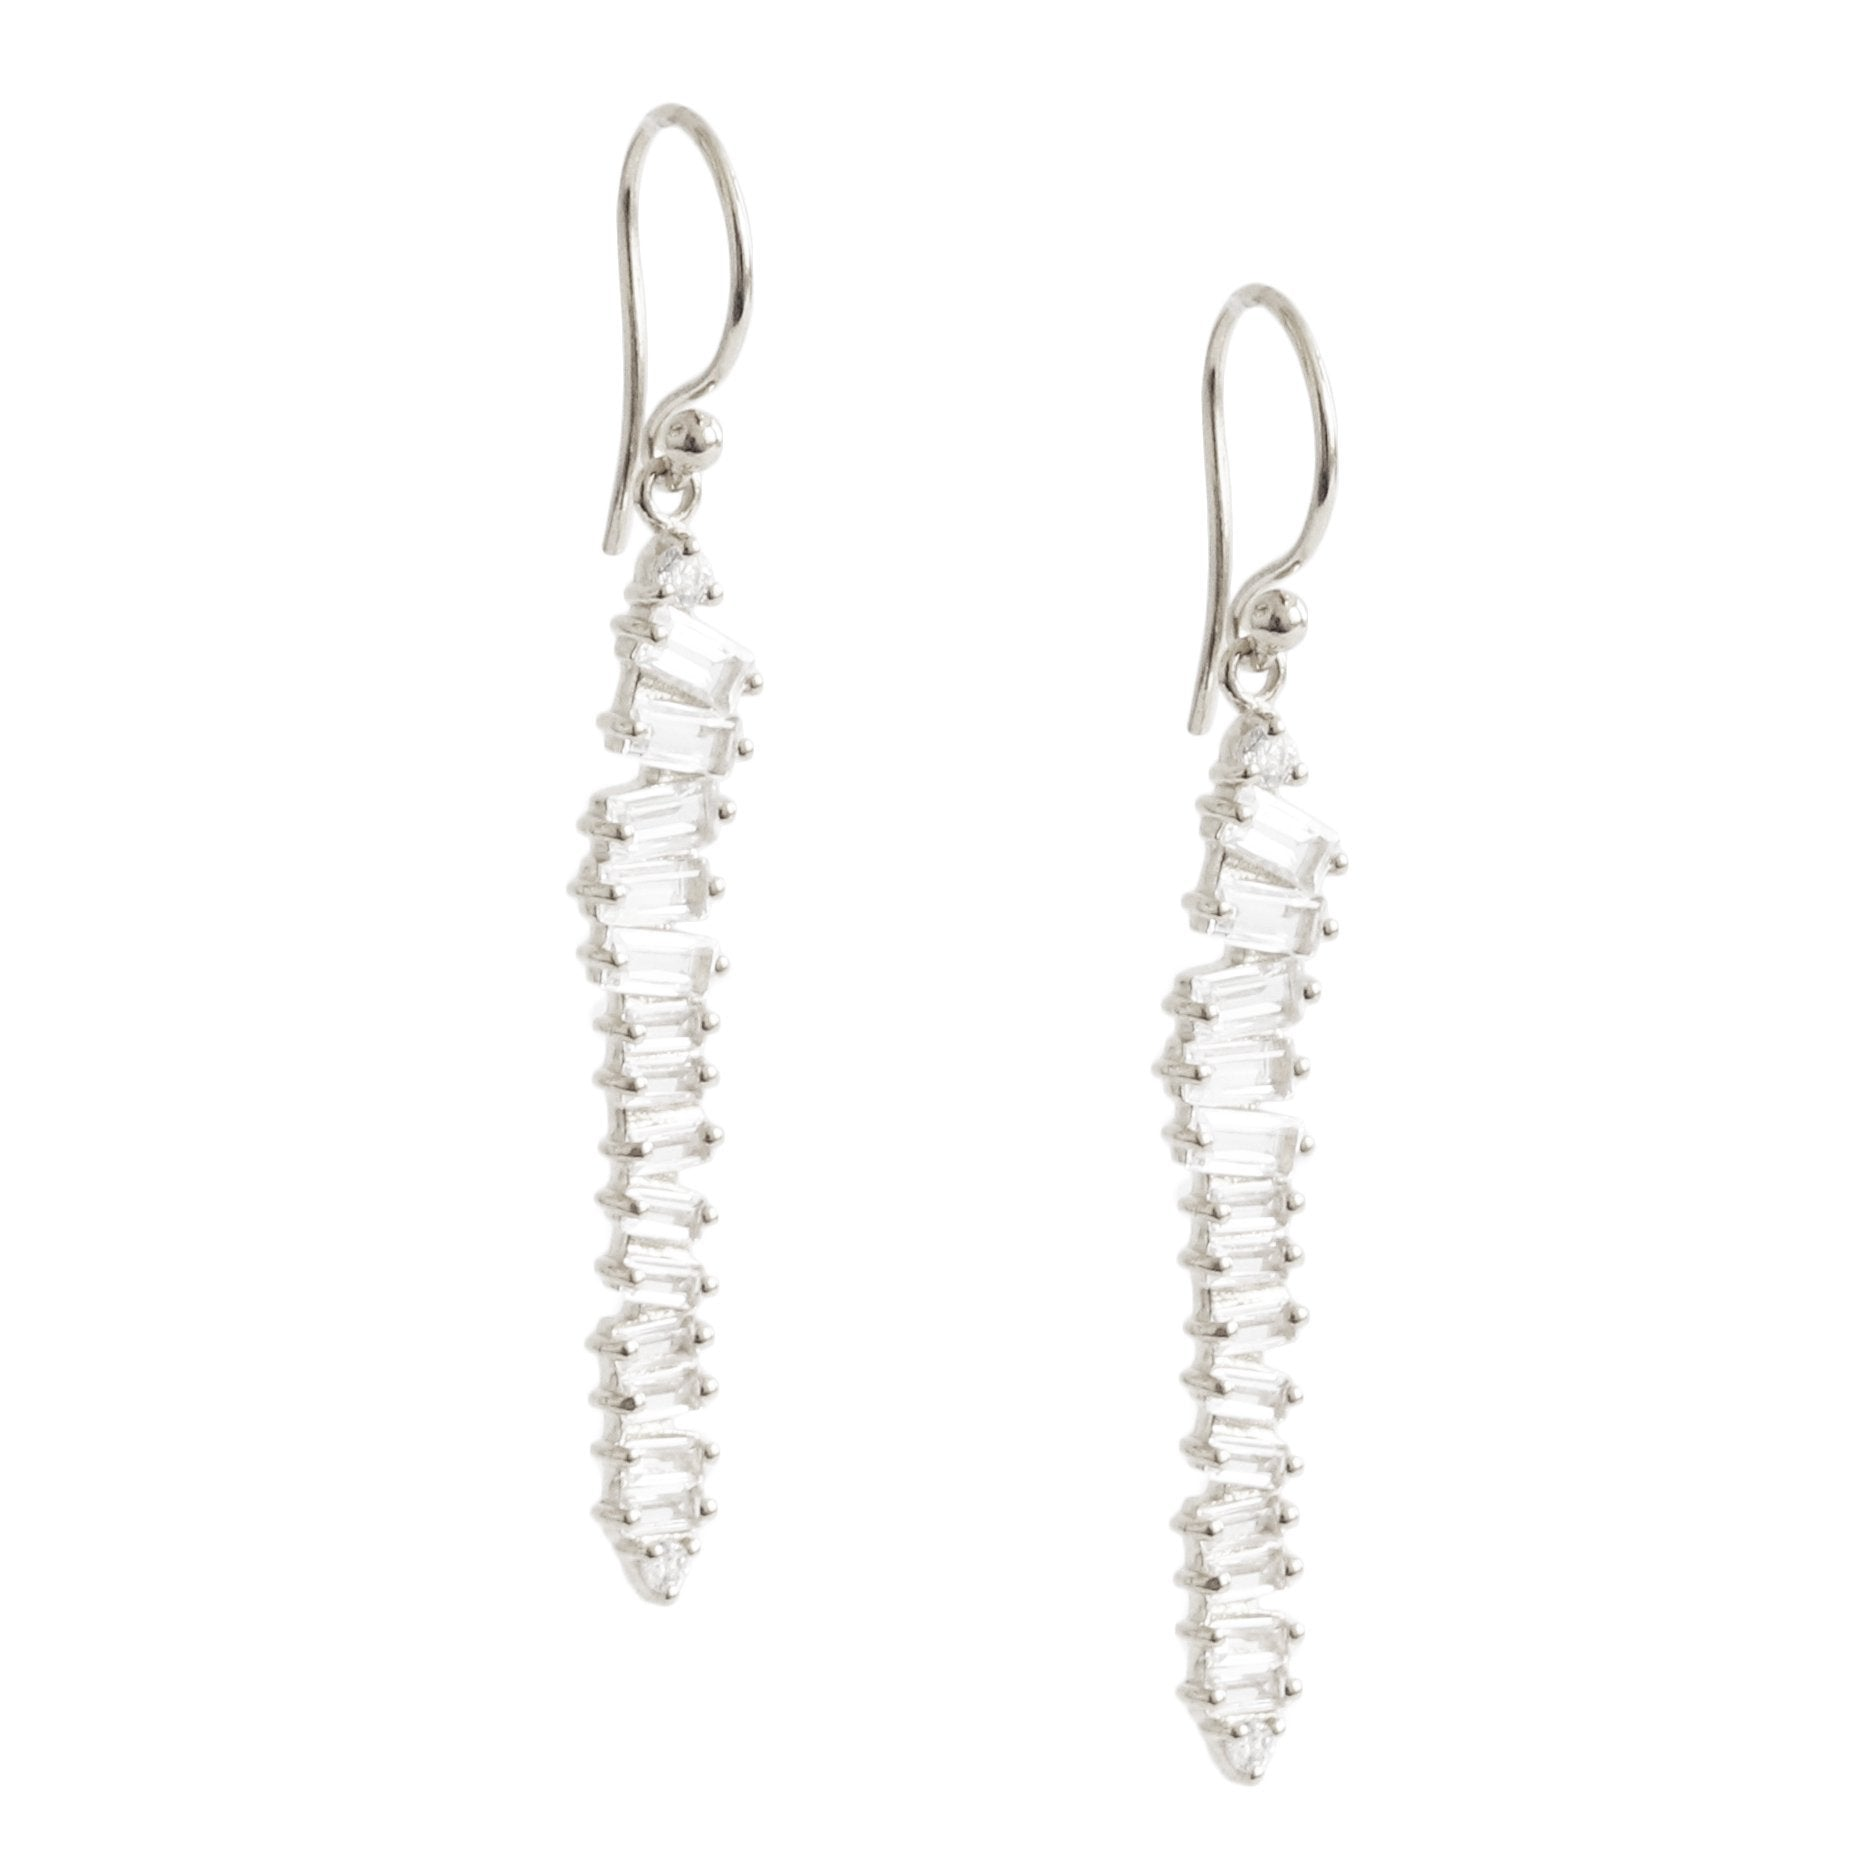 Loyal Waterfall Drop Earrings - White Topaz, Cubic Zirconia & Silver - SO PRETTY CARA COTTER